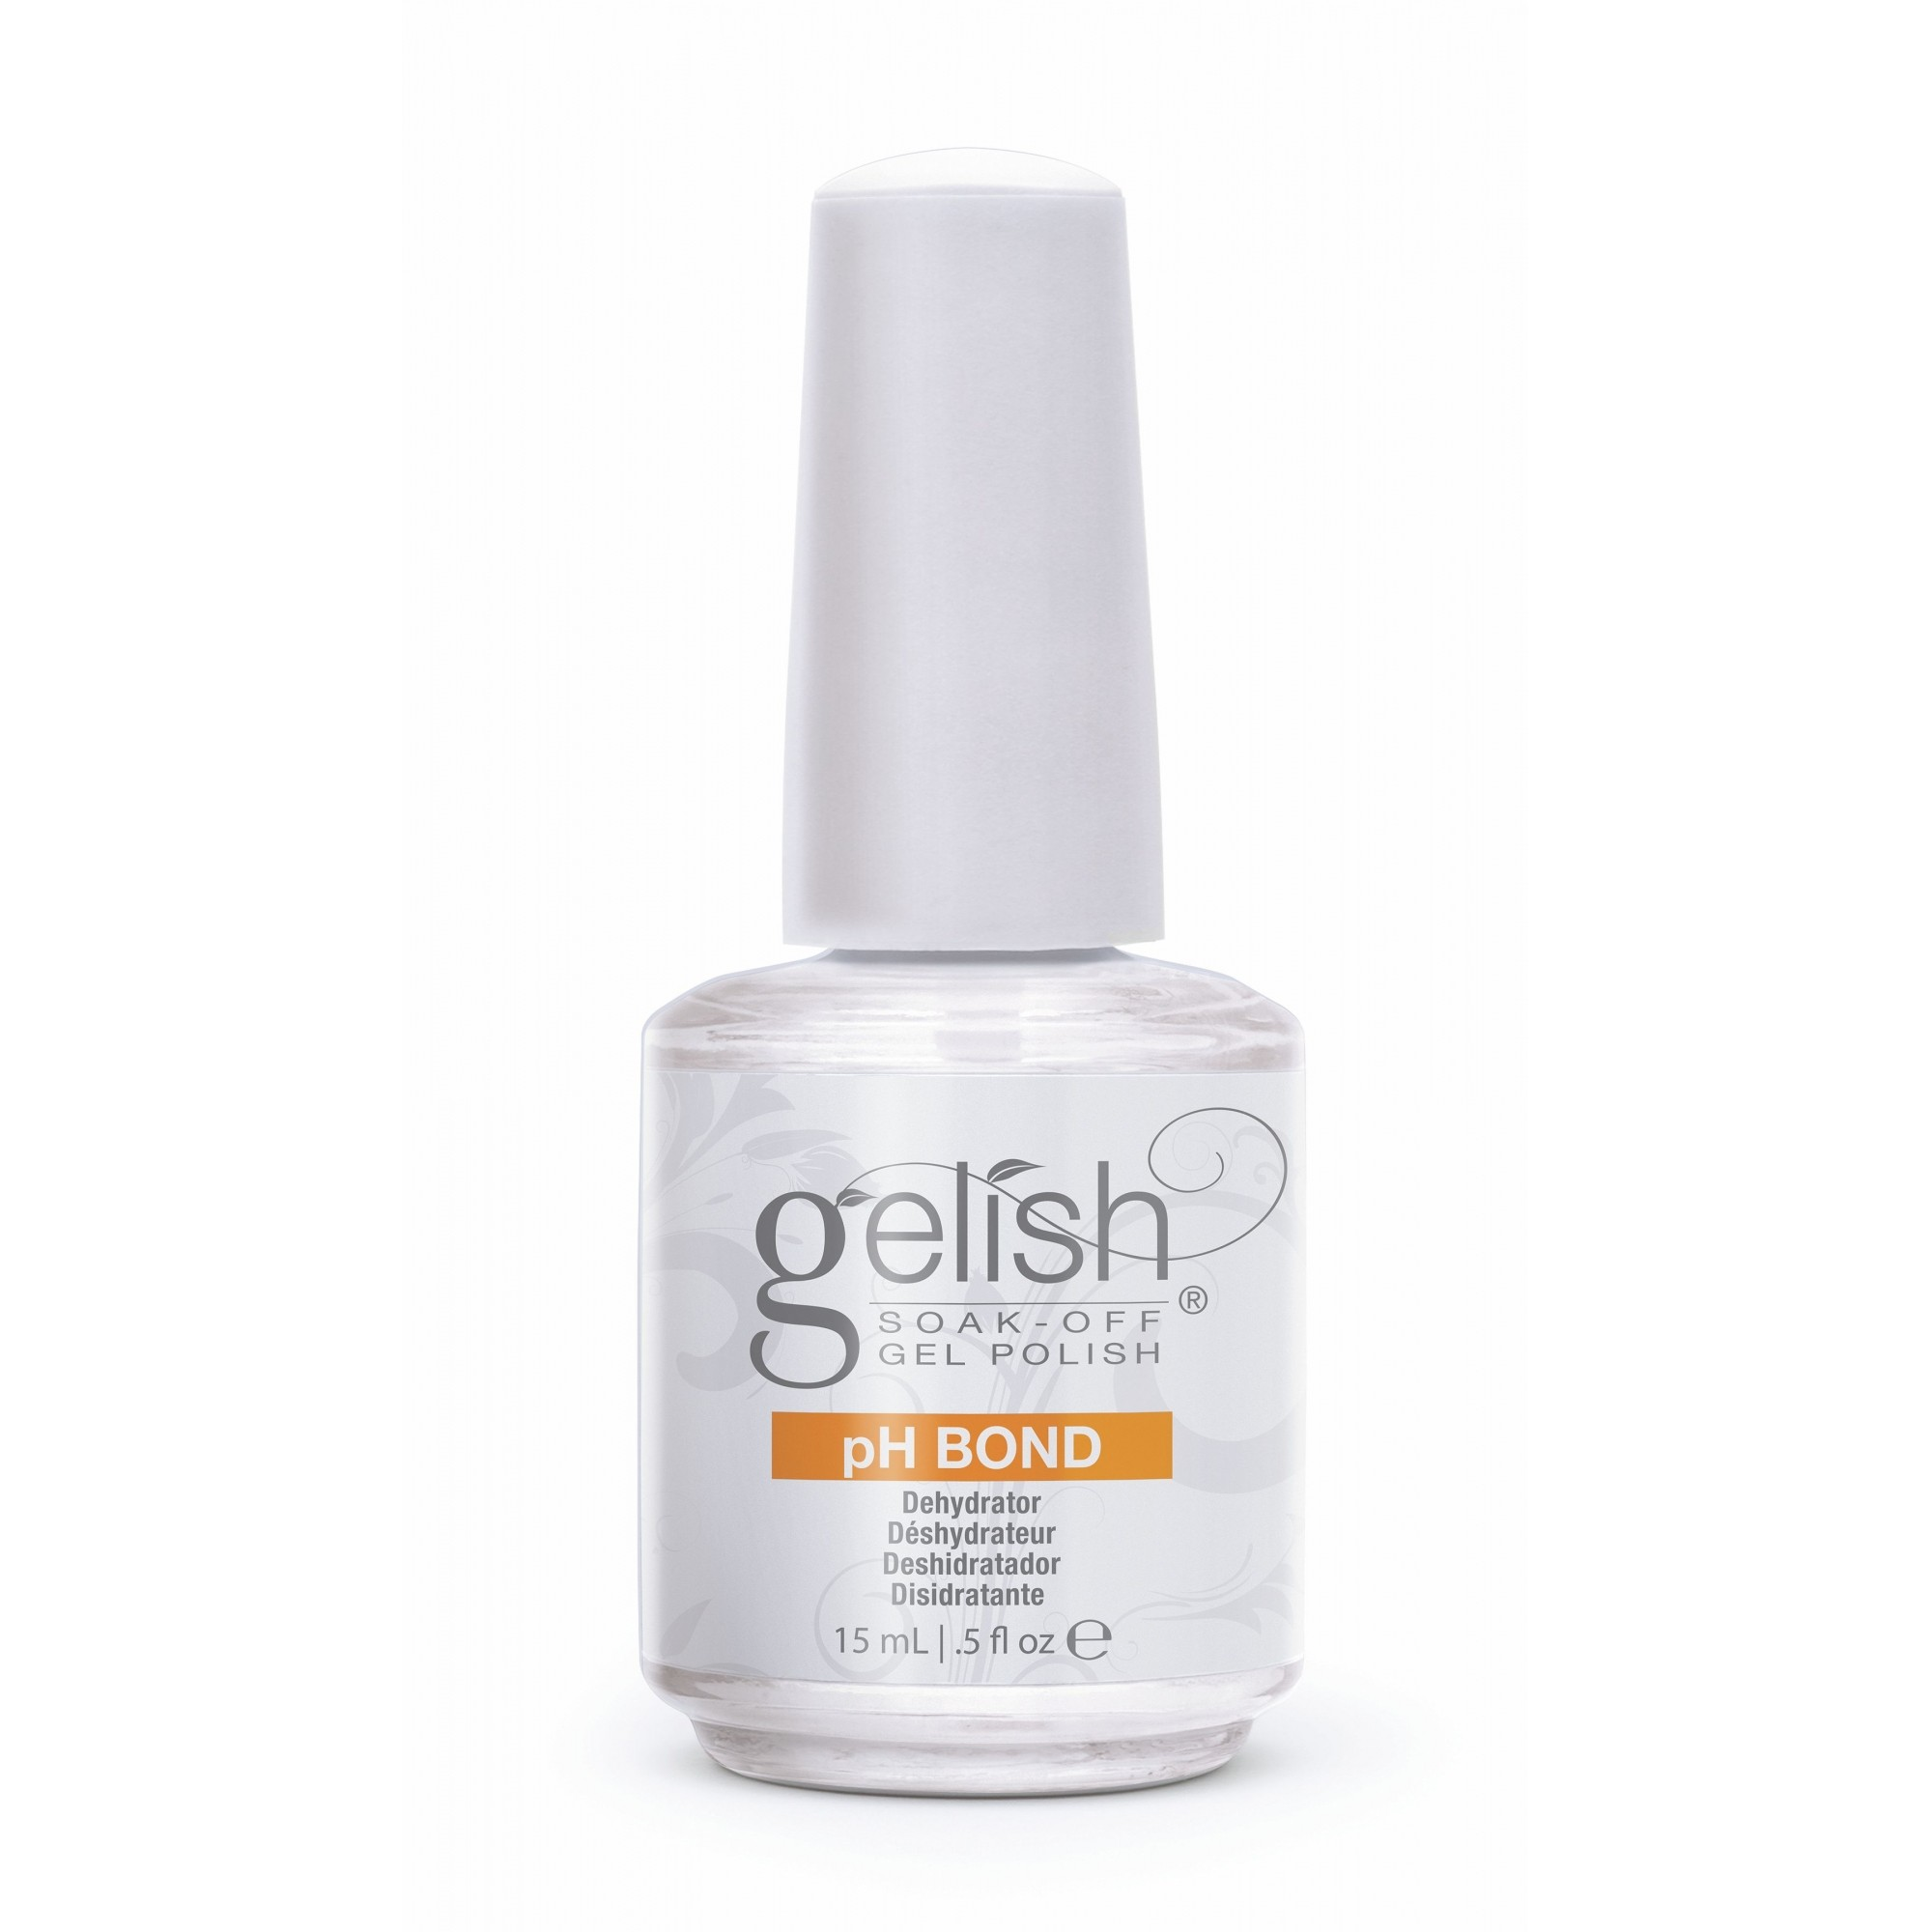 pH Bond Gelish Harmony Desidratador 15ml